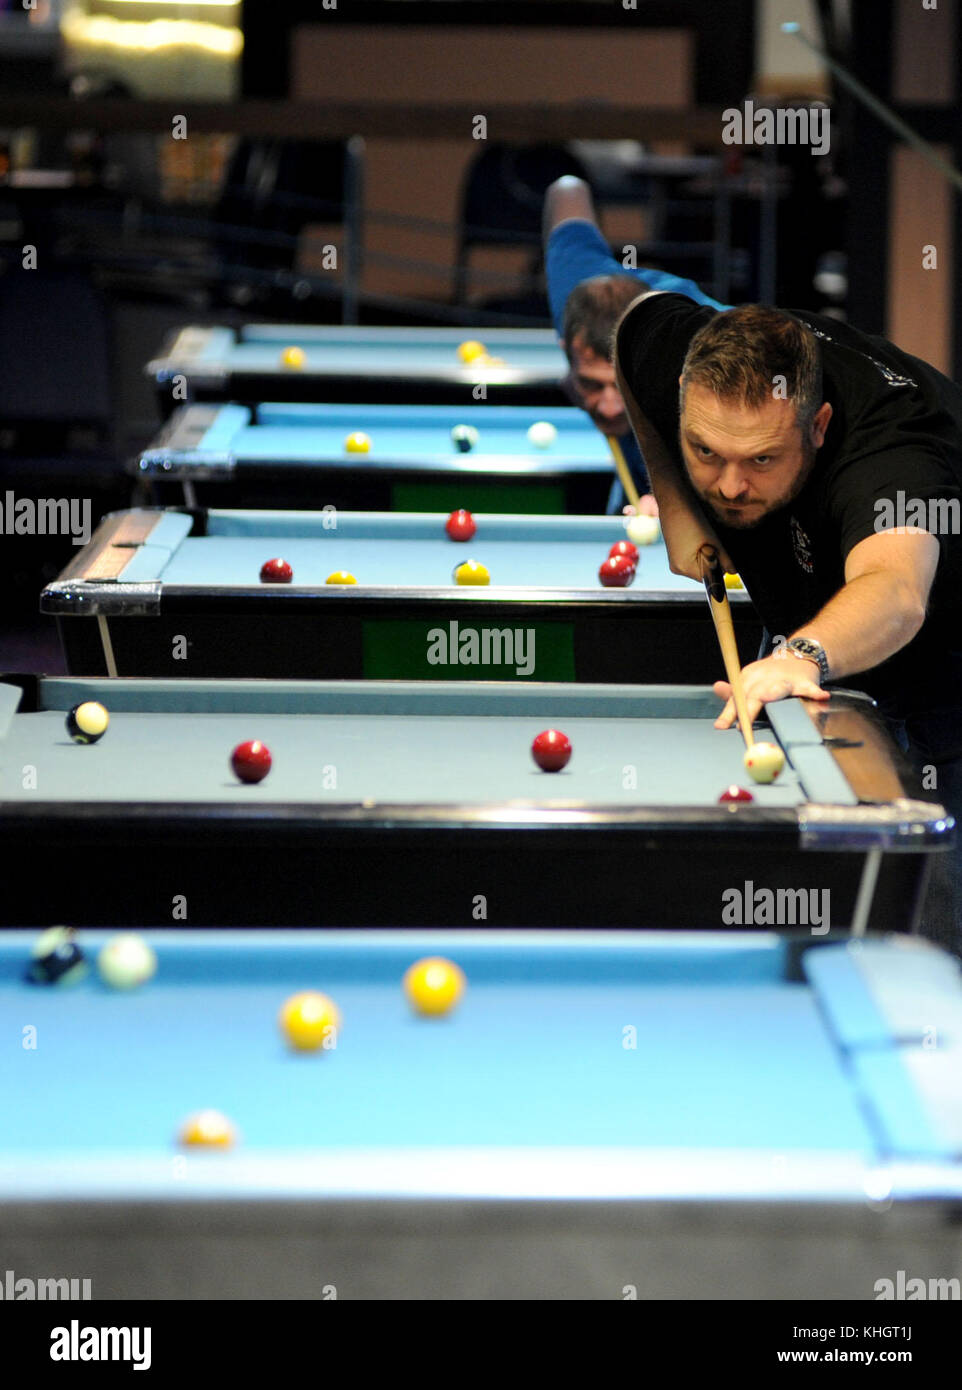 Porthcawl, Wales, UK. Friday 17th November 2017  Pool players take part in the Wales Festival of Pool at Trecco - Stock Image